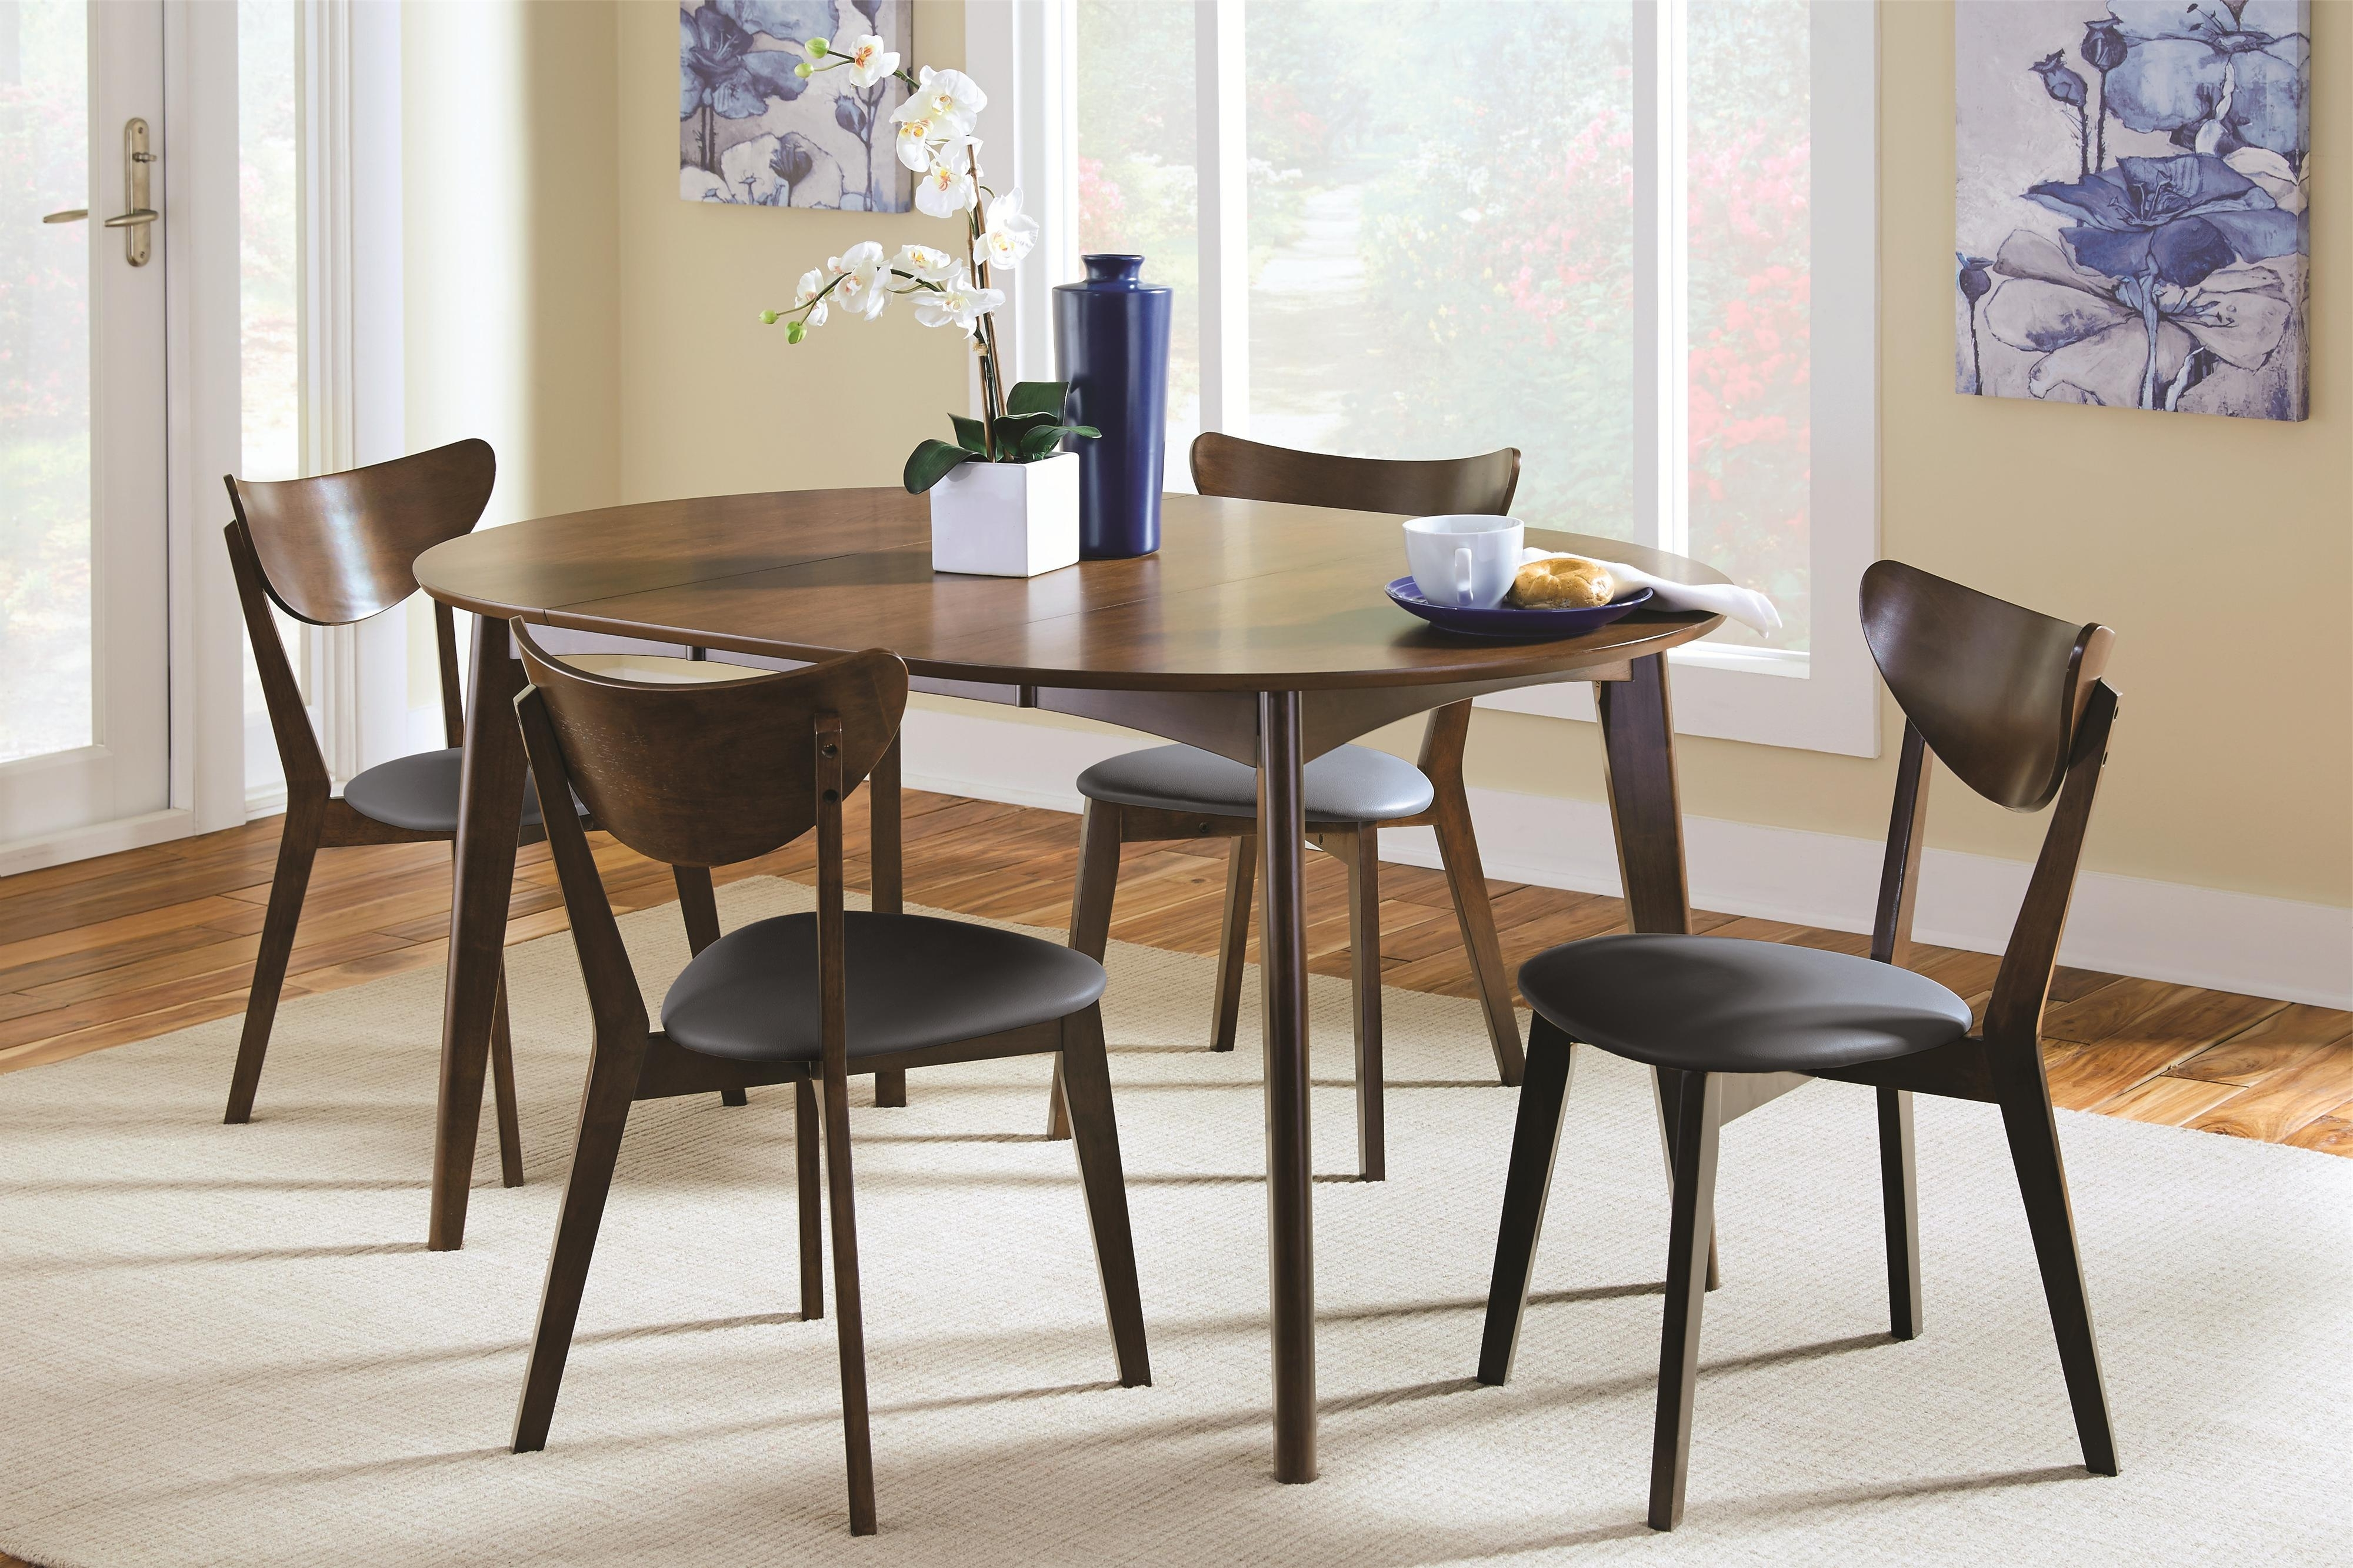 Coaster Malone Mid Century Modern 5 Piece Solid Wood Dining Set Within Most Popular Dining Sets (Gallery 8 of 25)